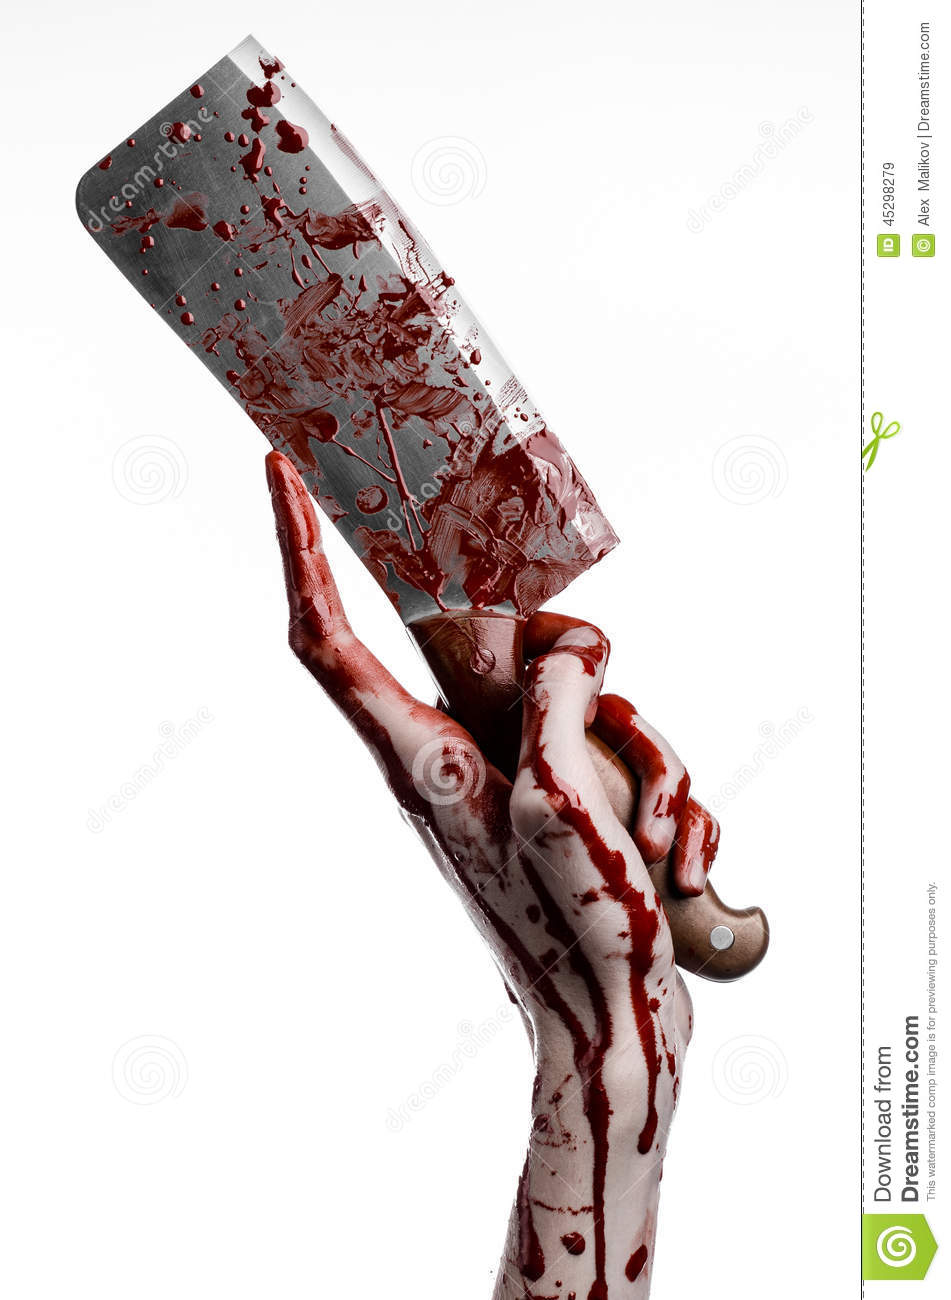 bloody hand holding - photo #29